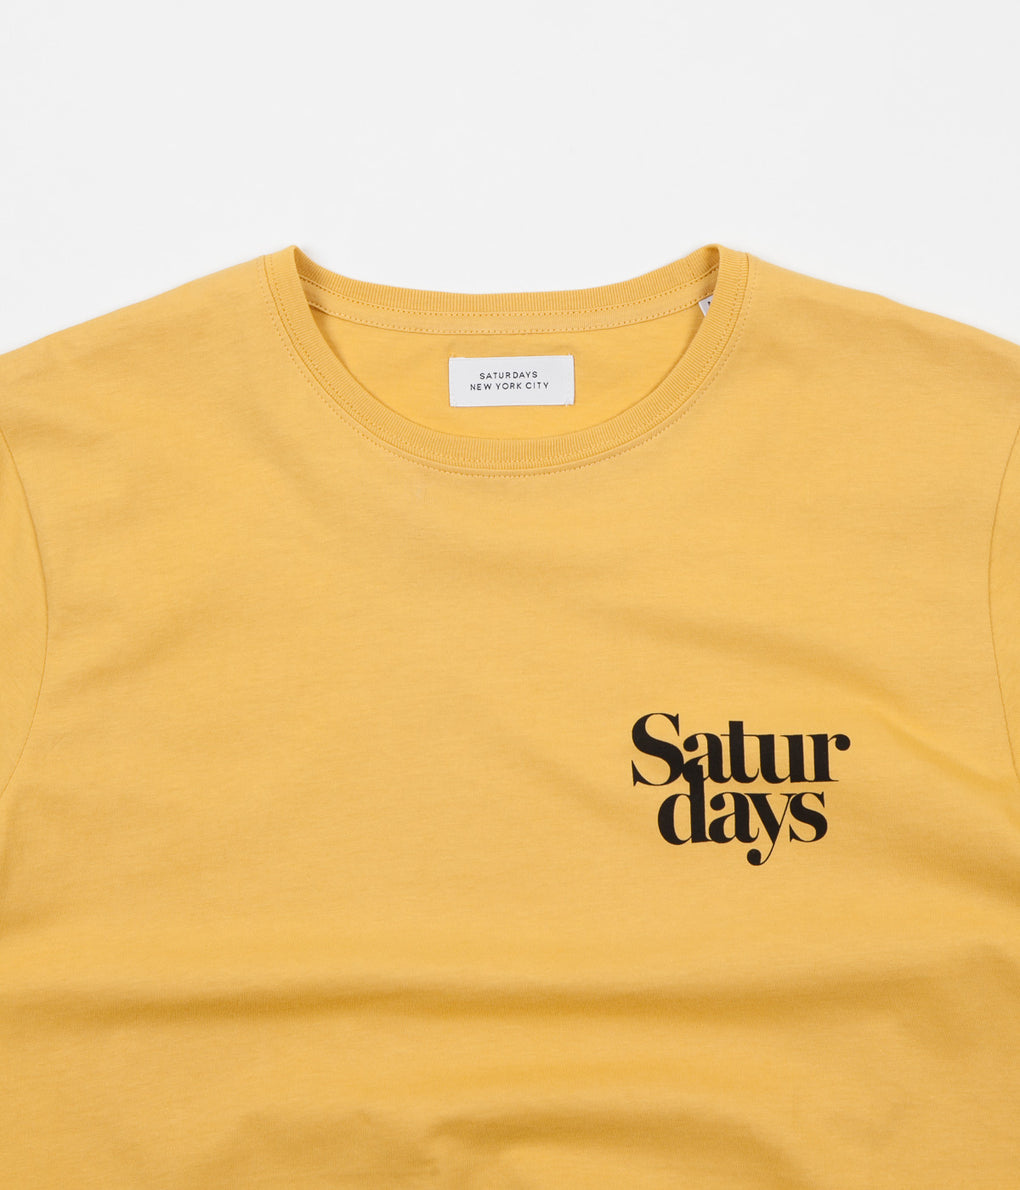 Saturdays NYC Miller Black Chest T-Shirt - Dusty Amber